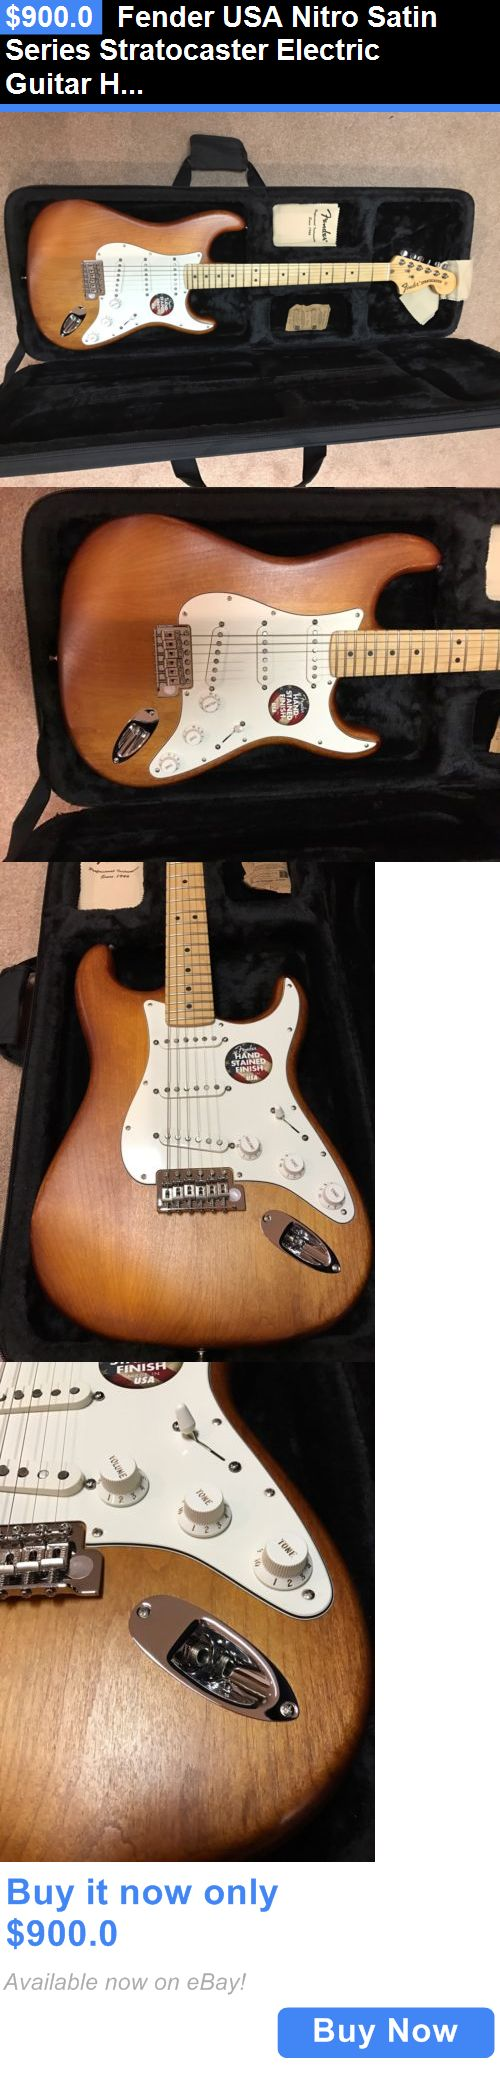 musical instruments: Fender Usa Nitro Satin Series Stratocaster Electric Guitar Honey Burst Maple BUY IT NOW ONLY: $900.0